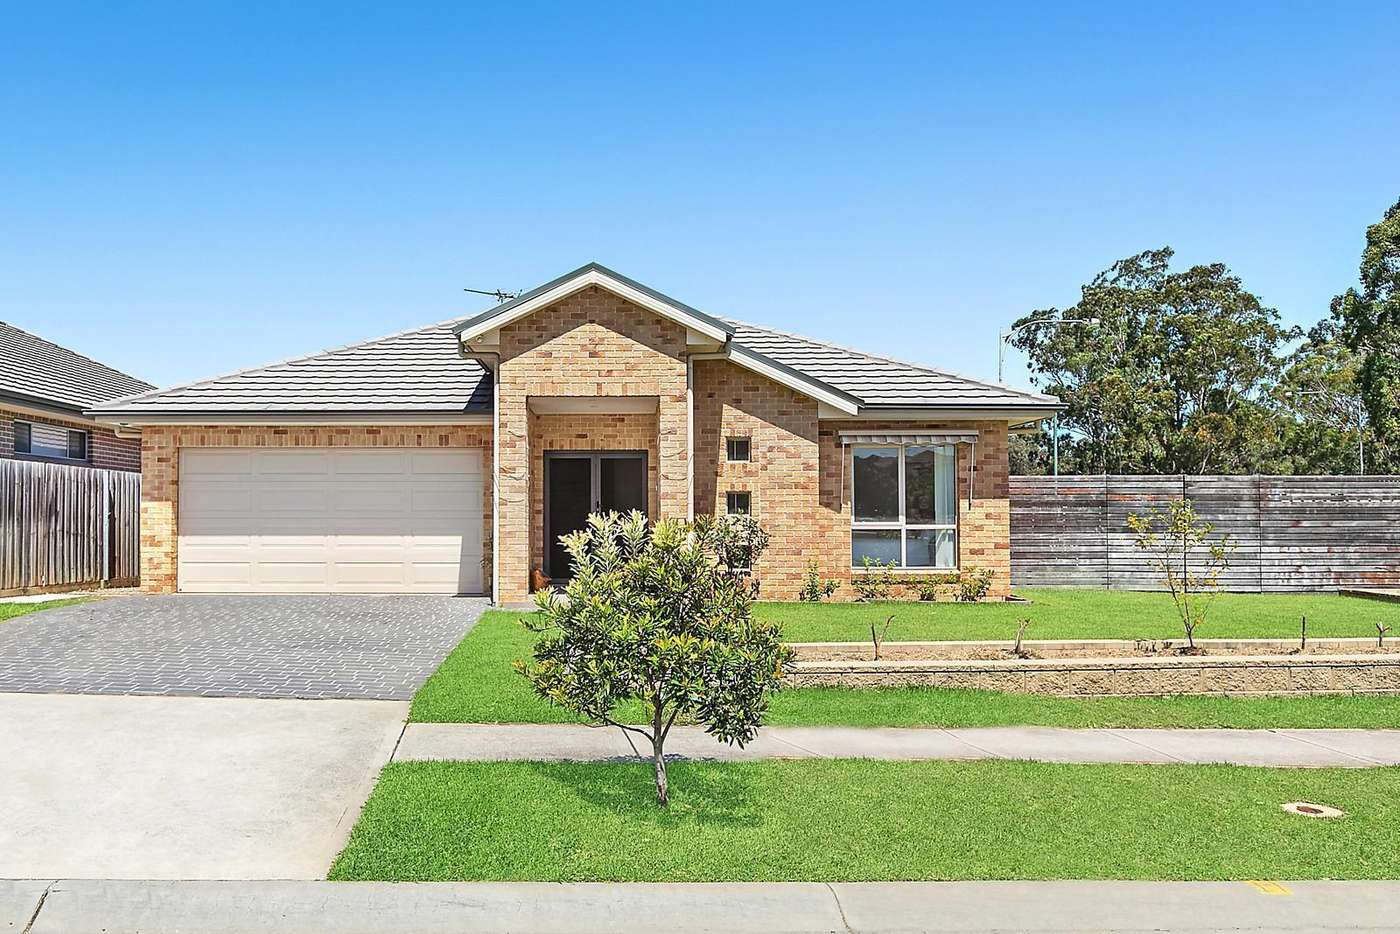 Main view of Homely house listing, 1 Holland Drive, Spring Farm NSW 2570